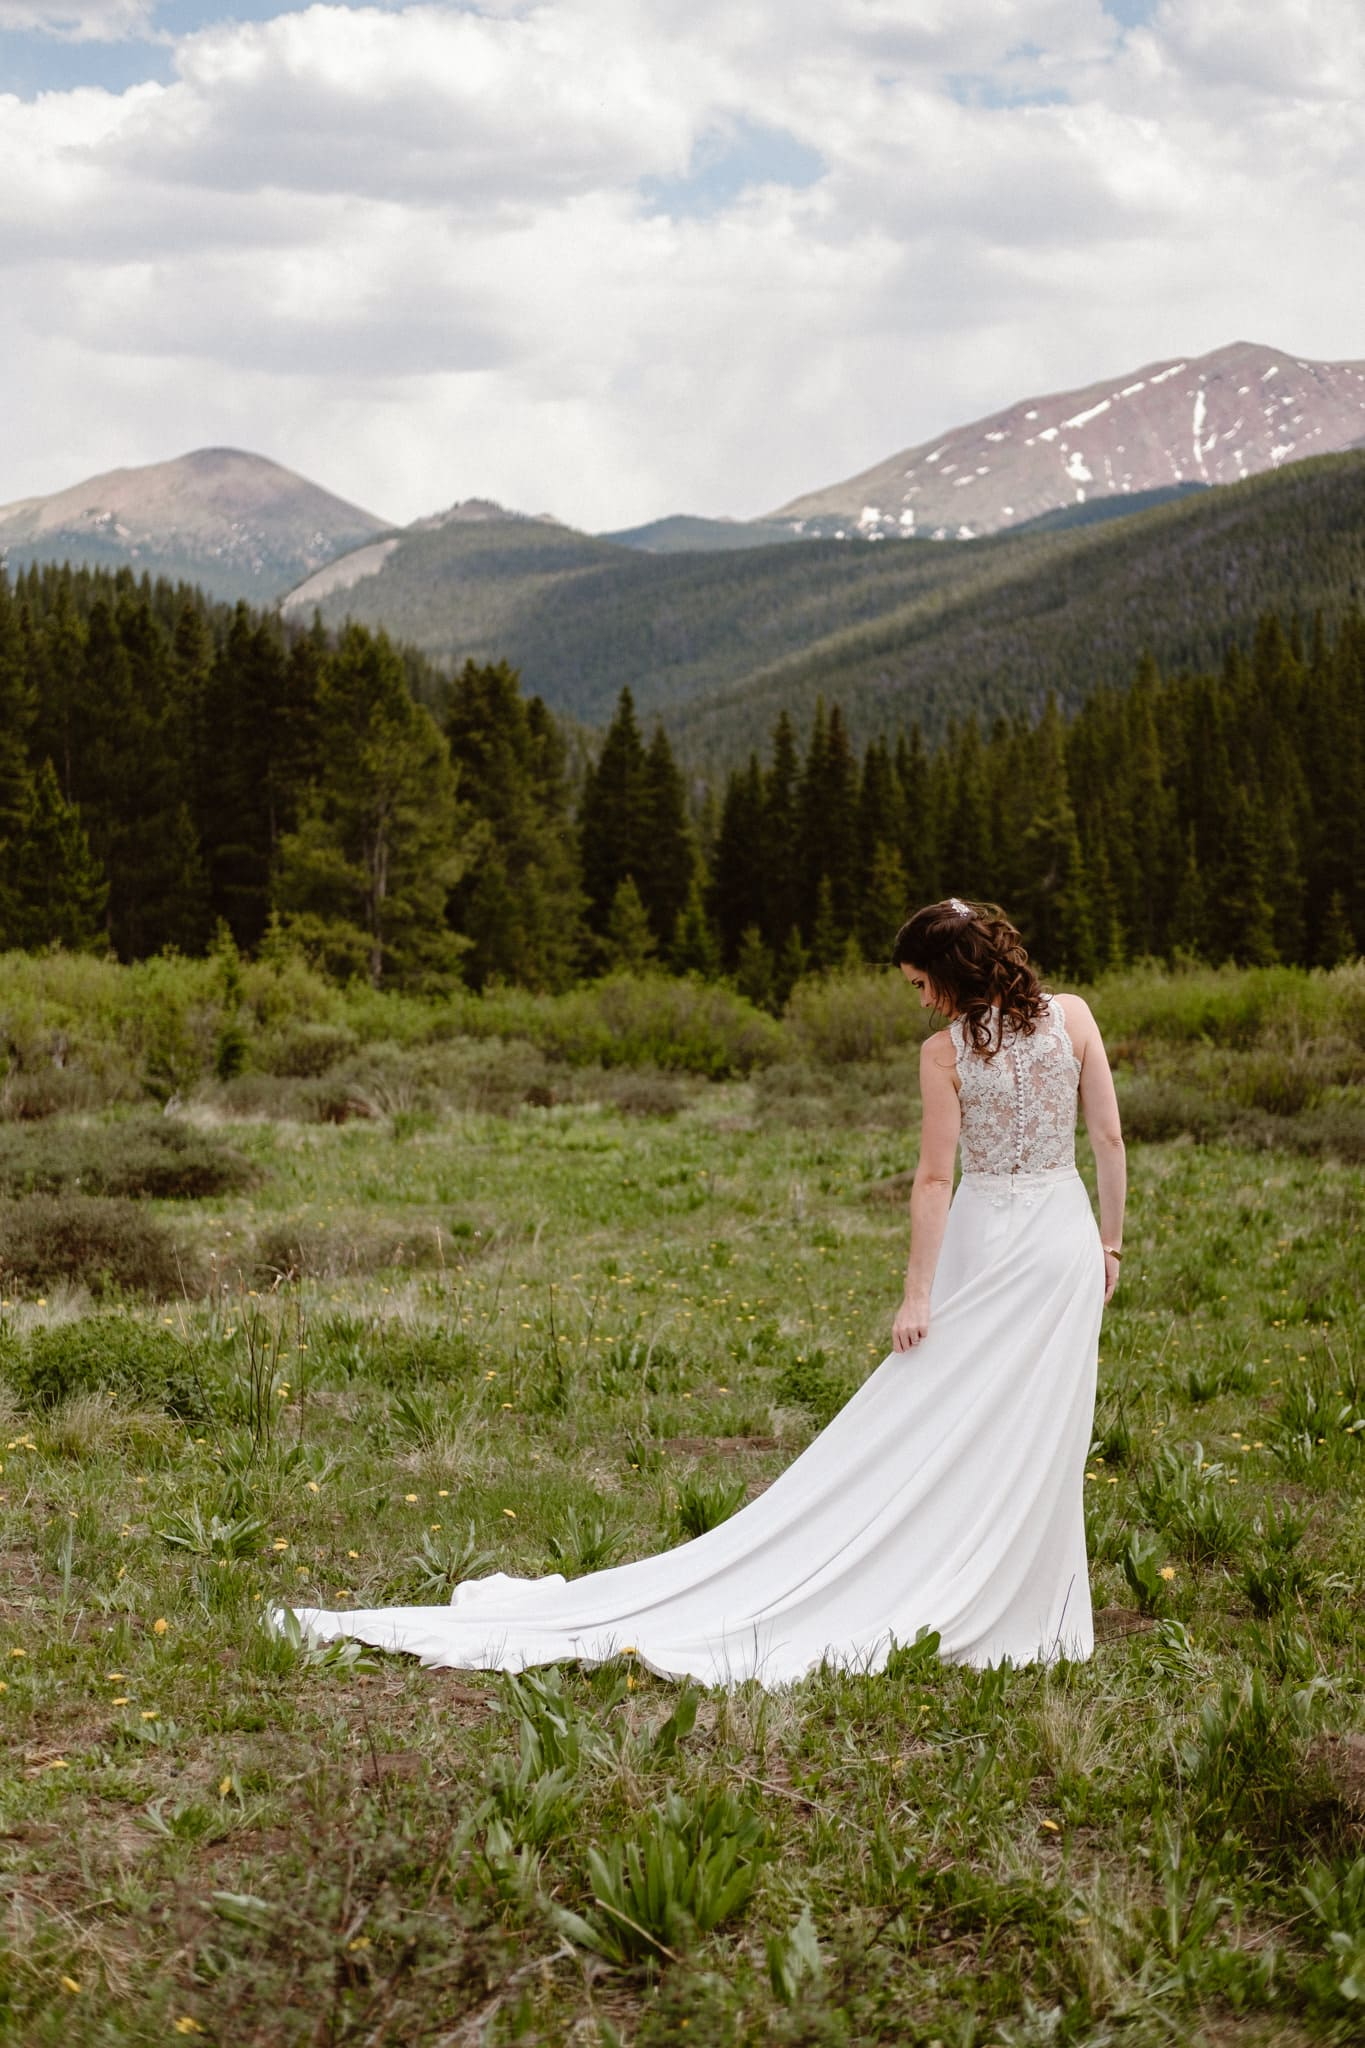 Bride and groom portraits at Boreas Pass, Breckenridge wedding photographer, Colorado elopement photographer